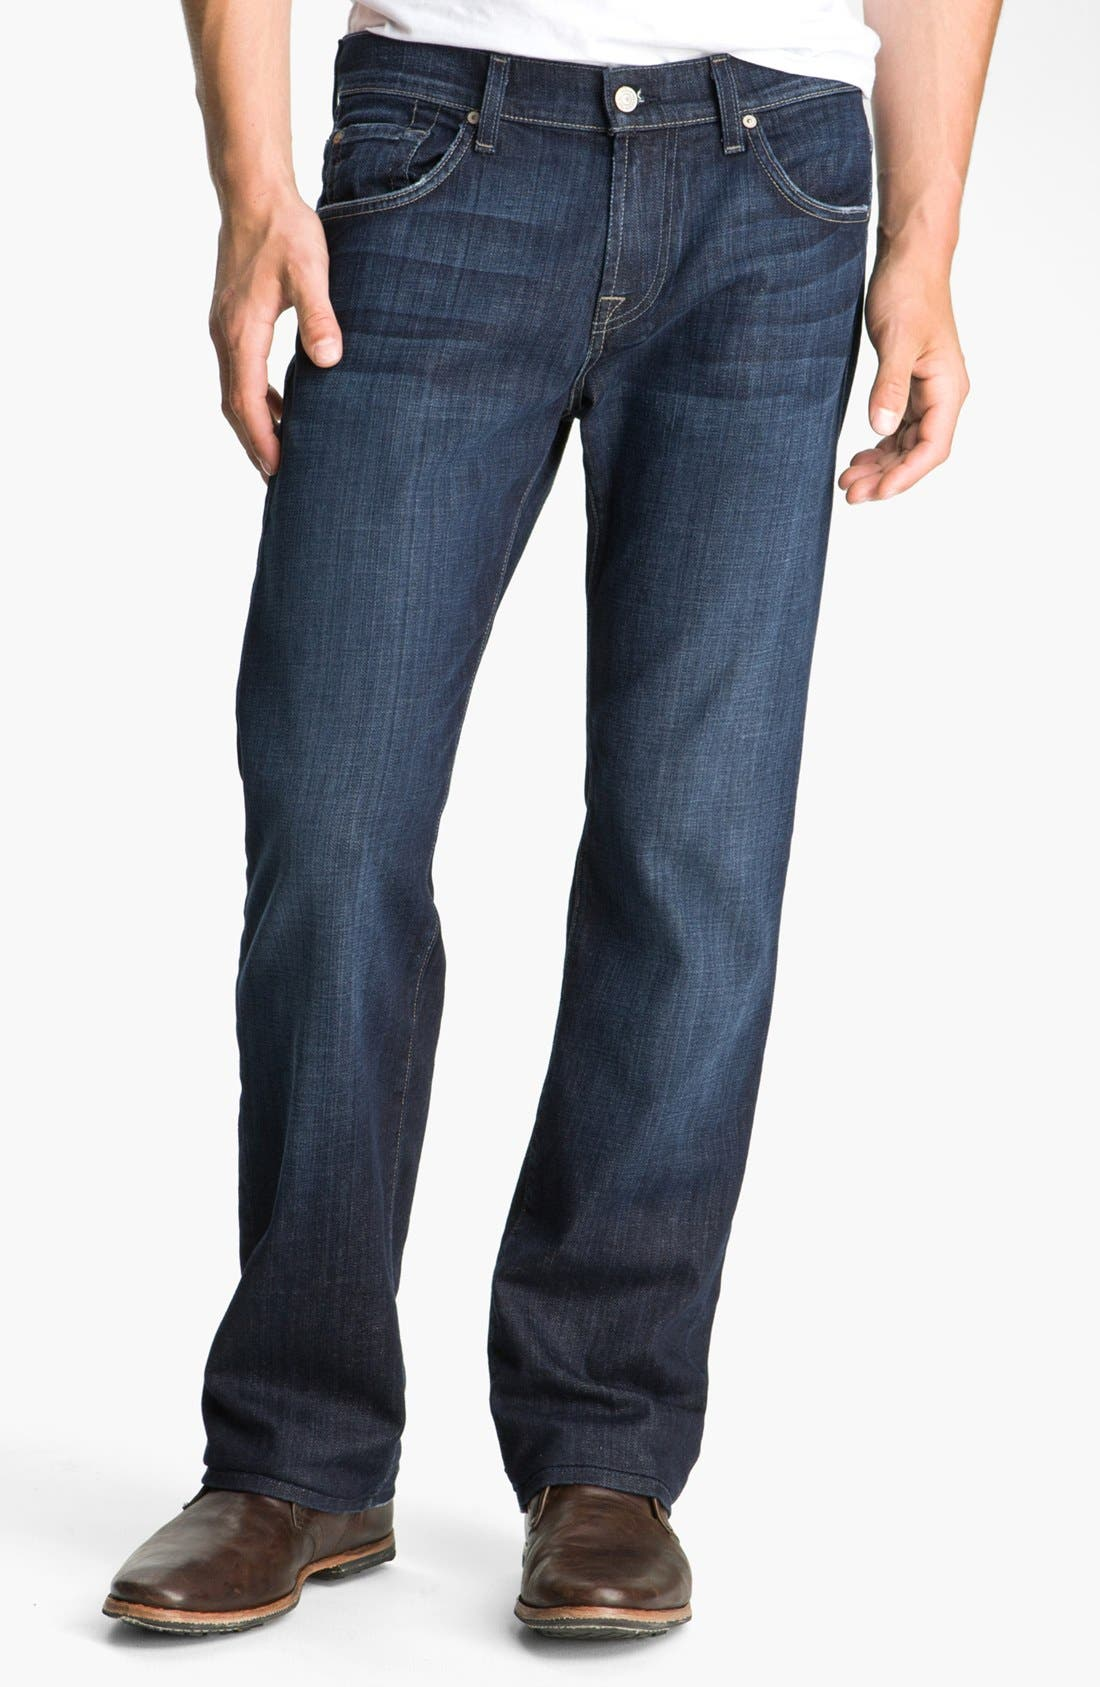 Alternate Image 1 Selected - 7 For All Mankind® 'Austyn' Relaxed Straight Leg Jeans (Los Angeles Dark) (Tall)